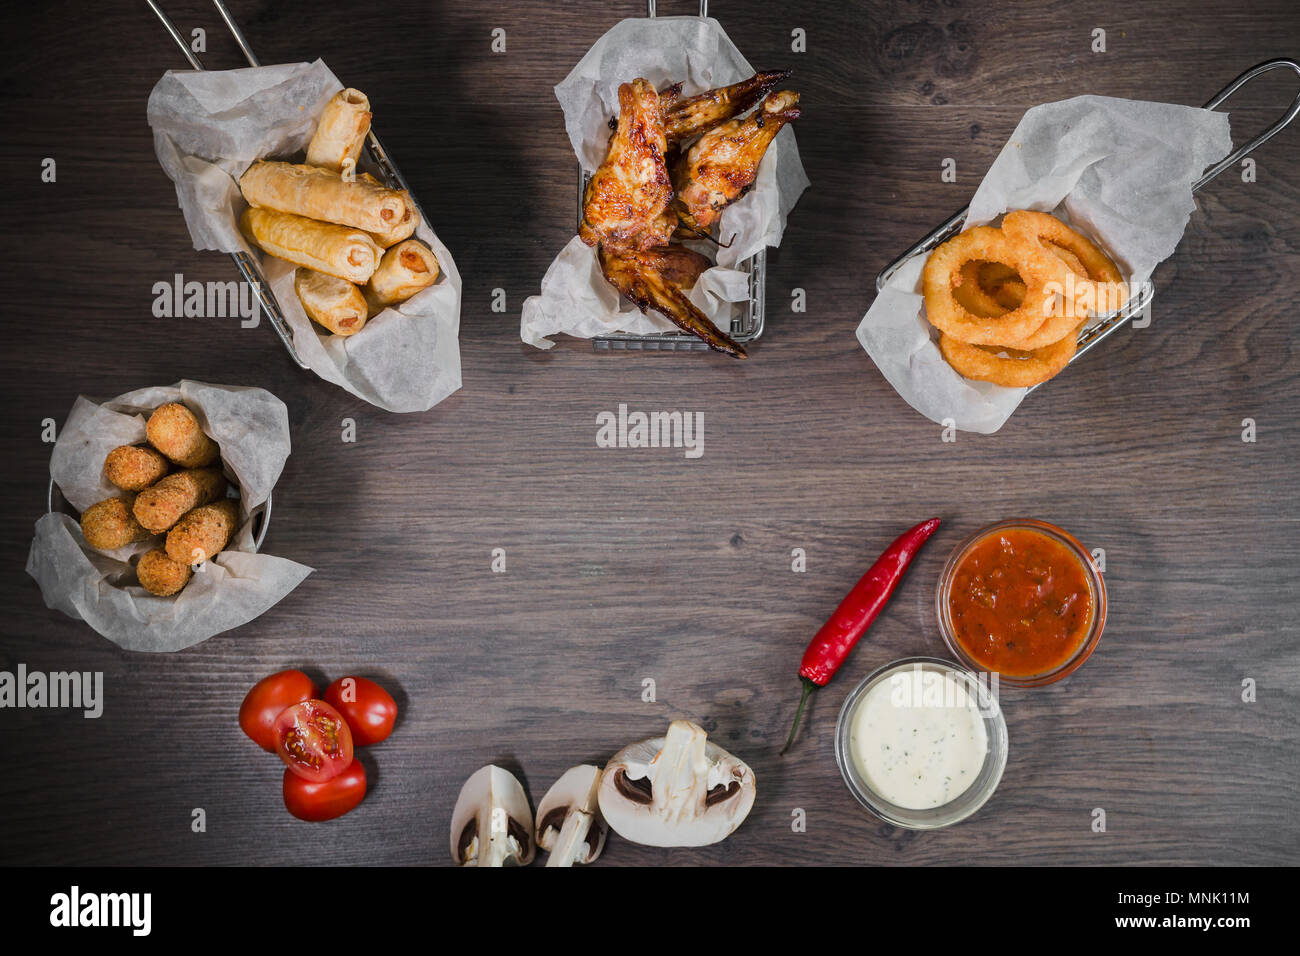 Snack for beer in the form of nuggets cheese rings and fried chicken legs - Stock Image